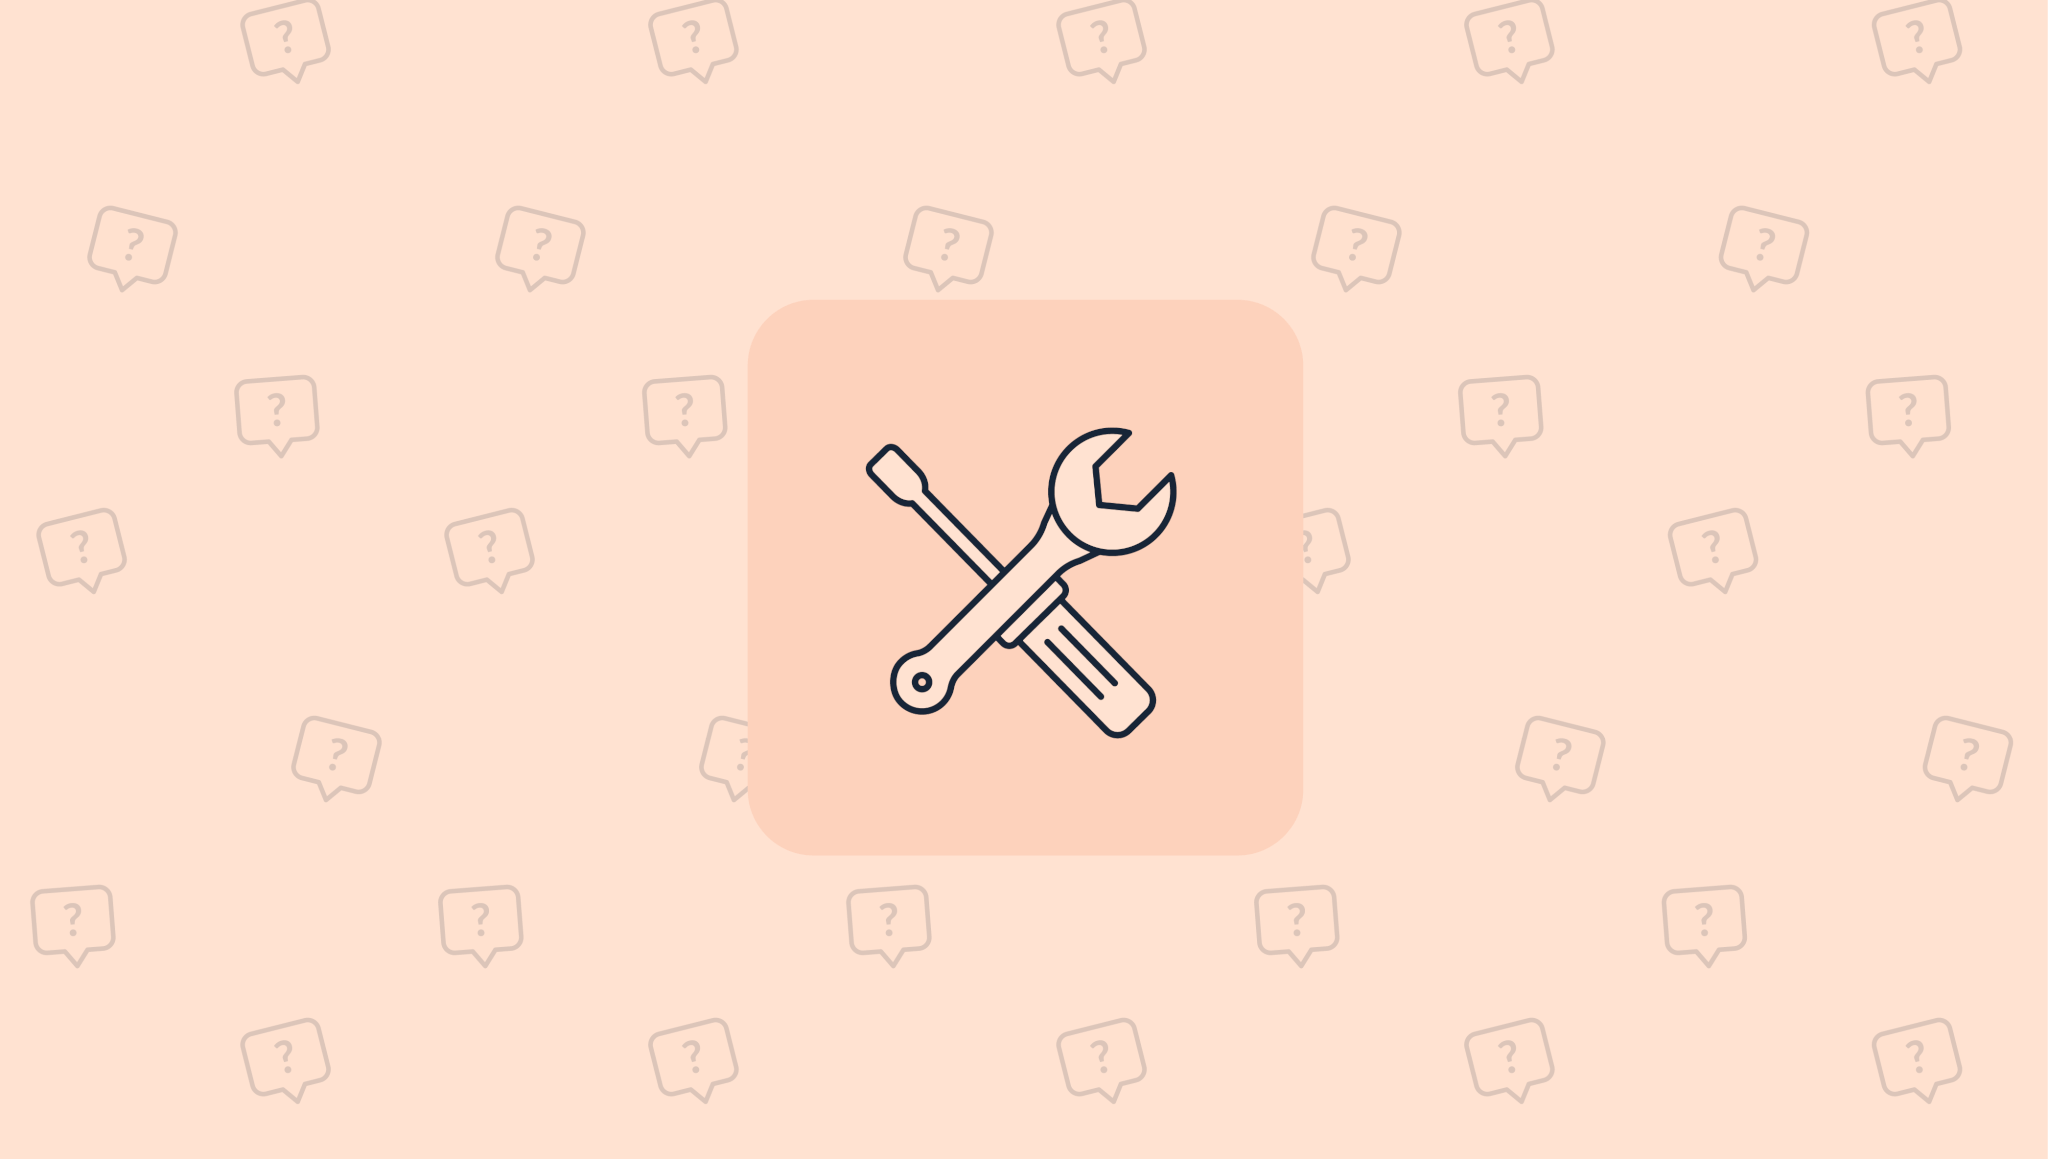 tools icon on top of a question mark and chat icon pattern